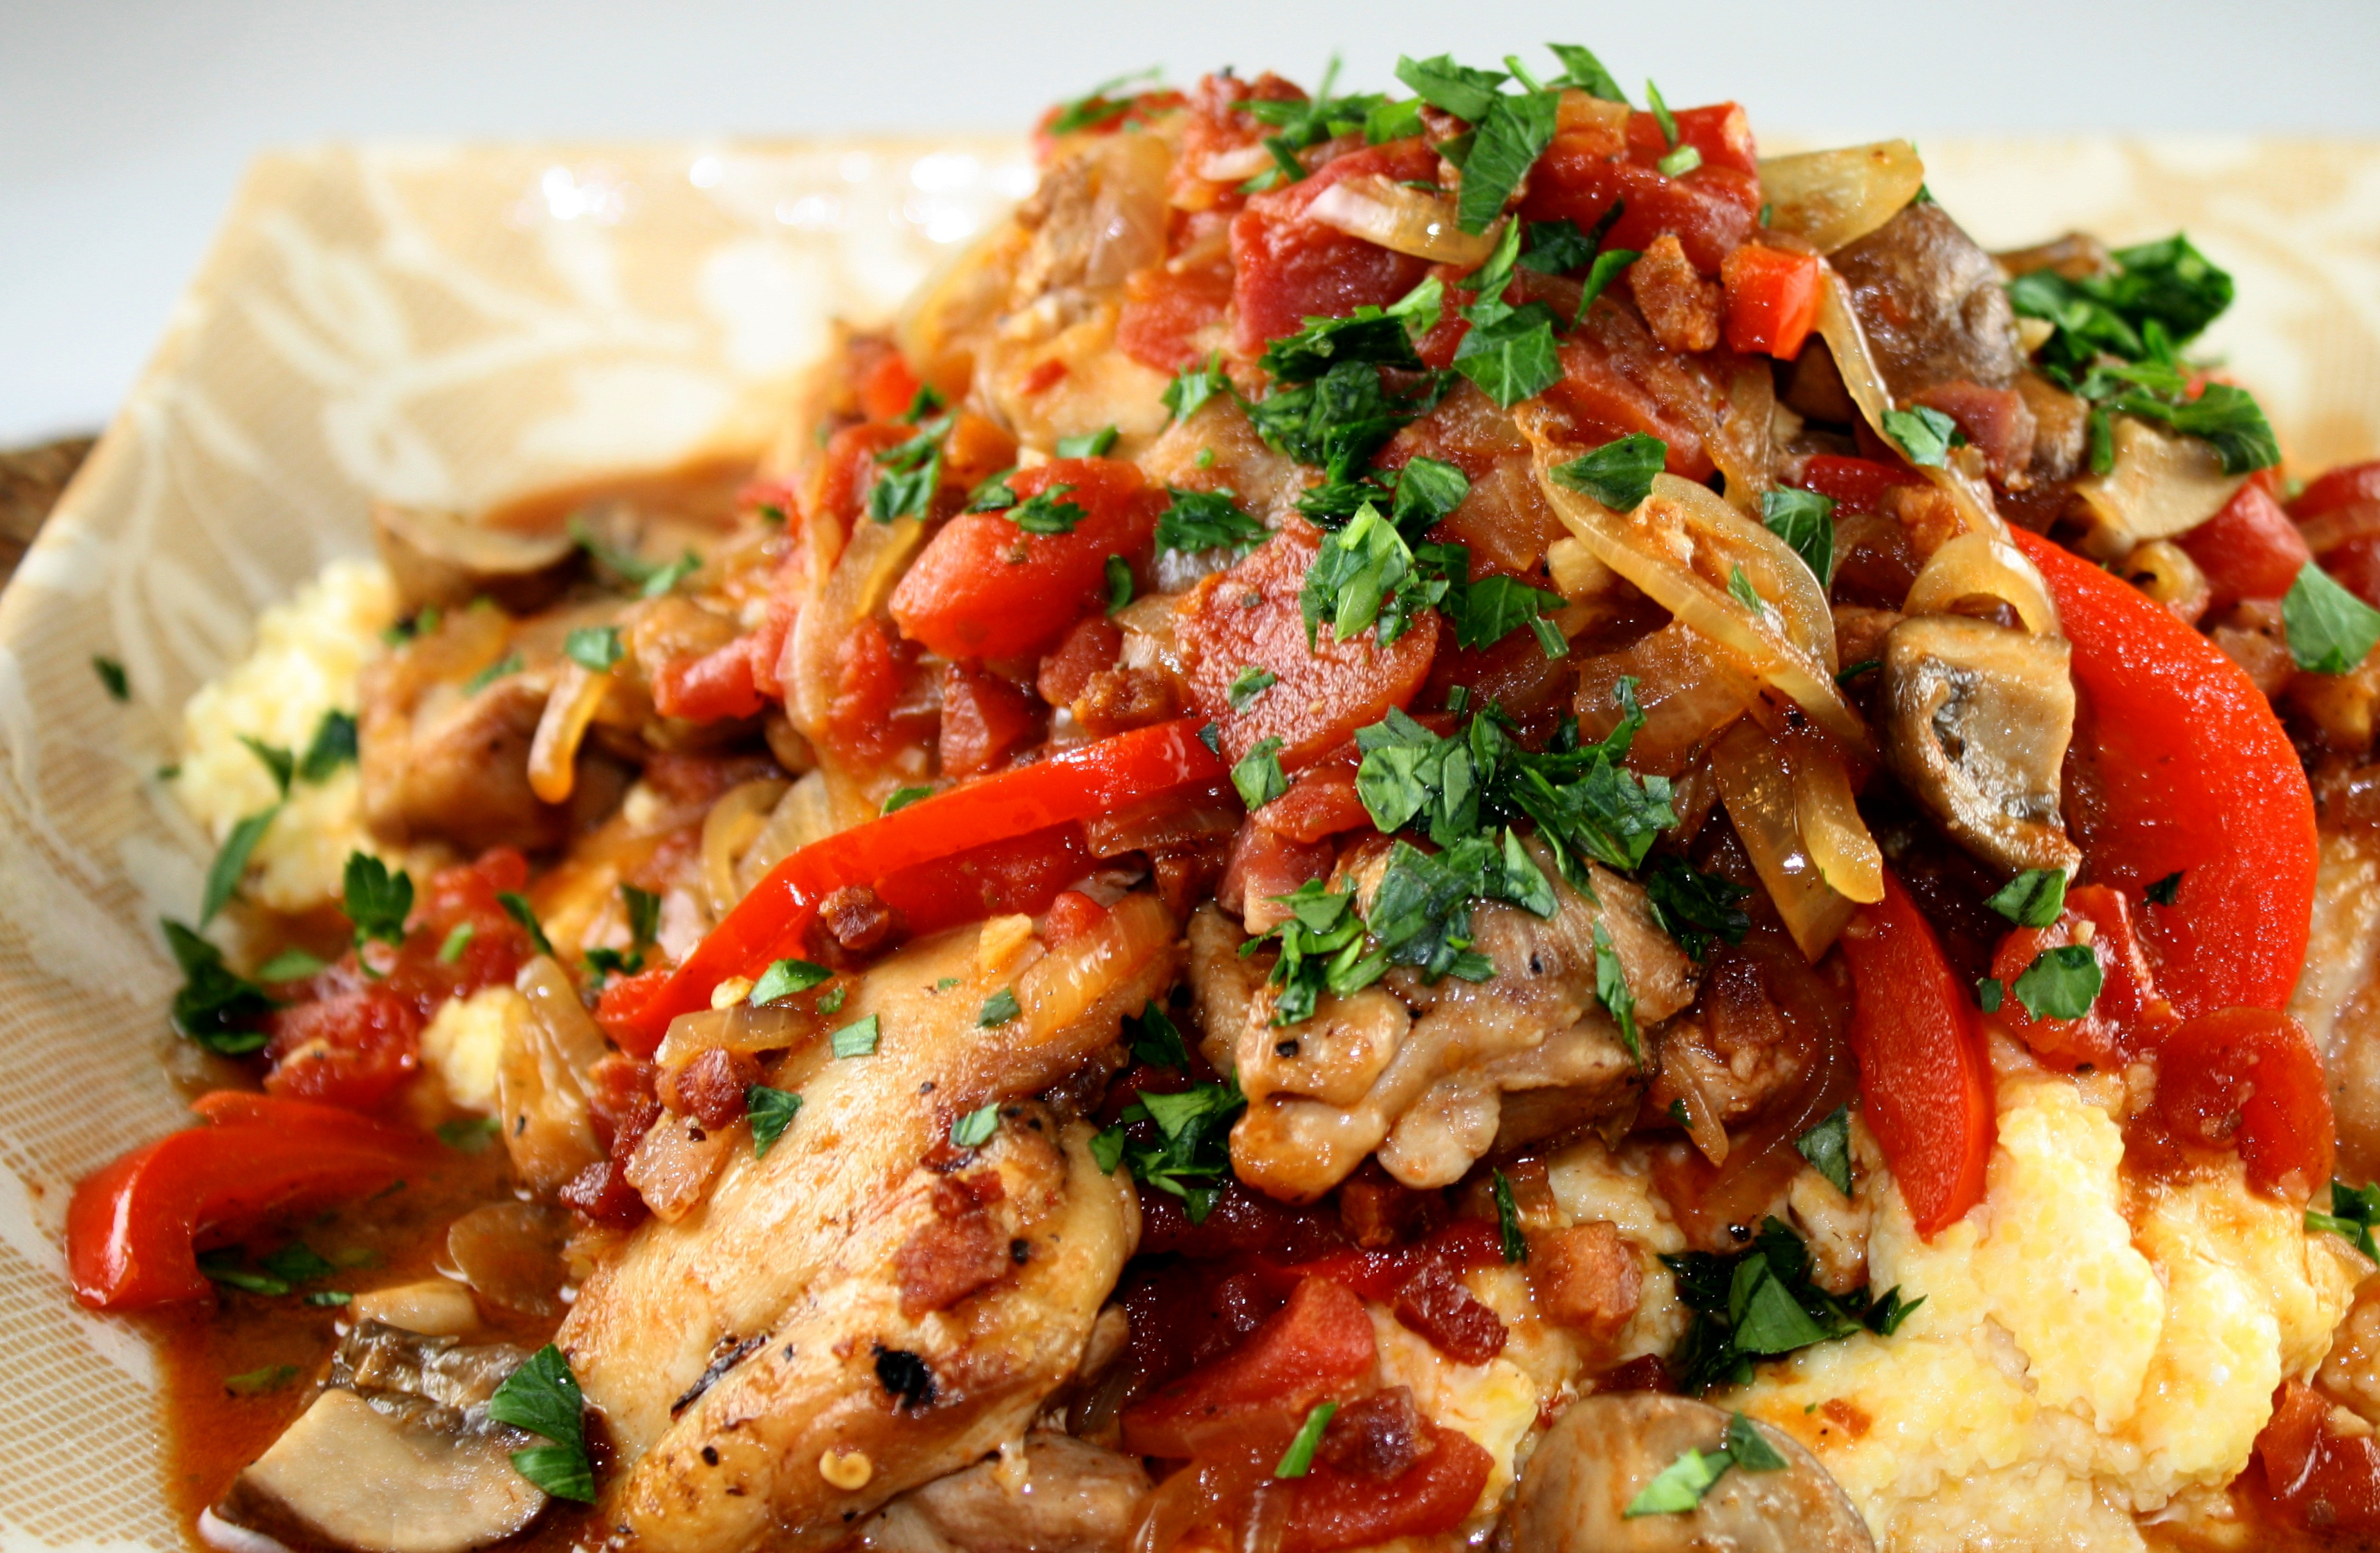 Food So Good Mall: Spicy Chicken Cacciatore